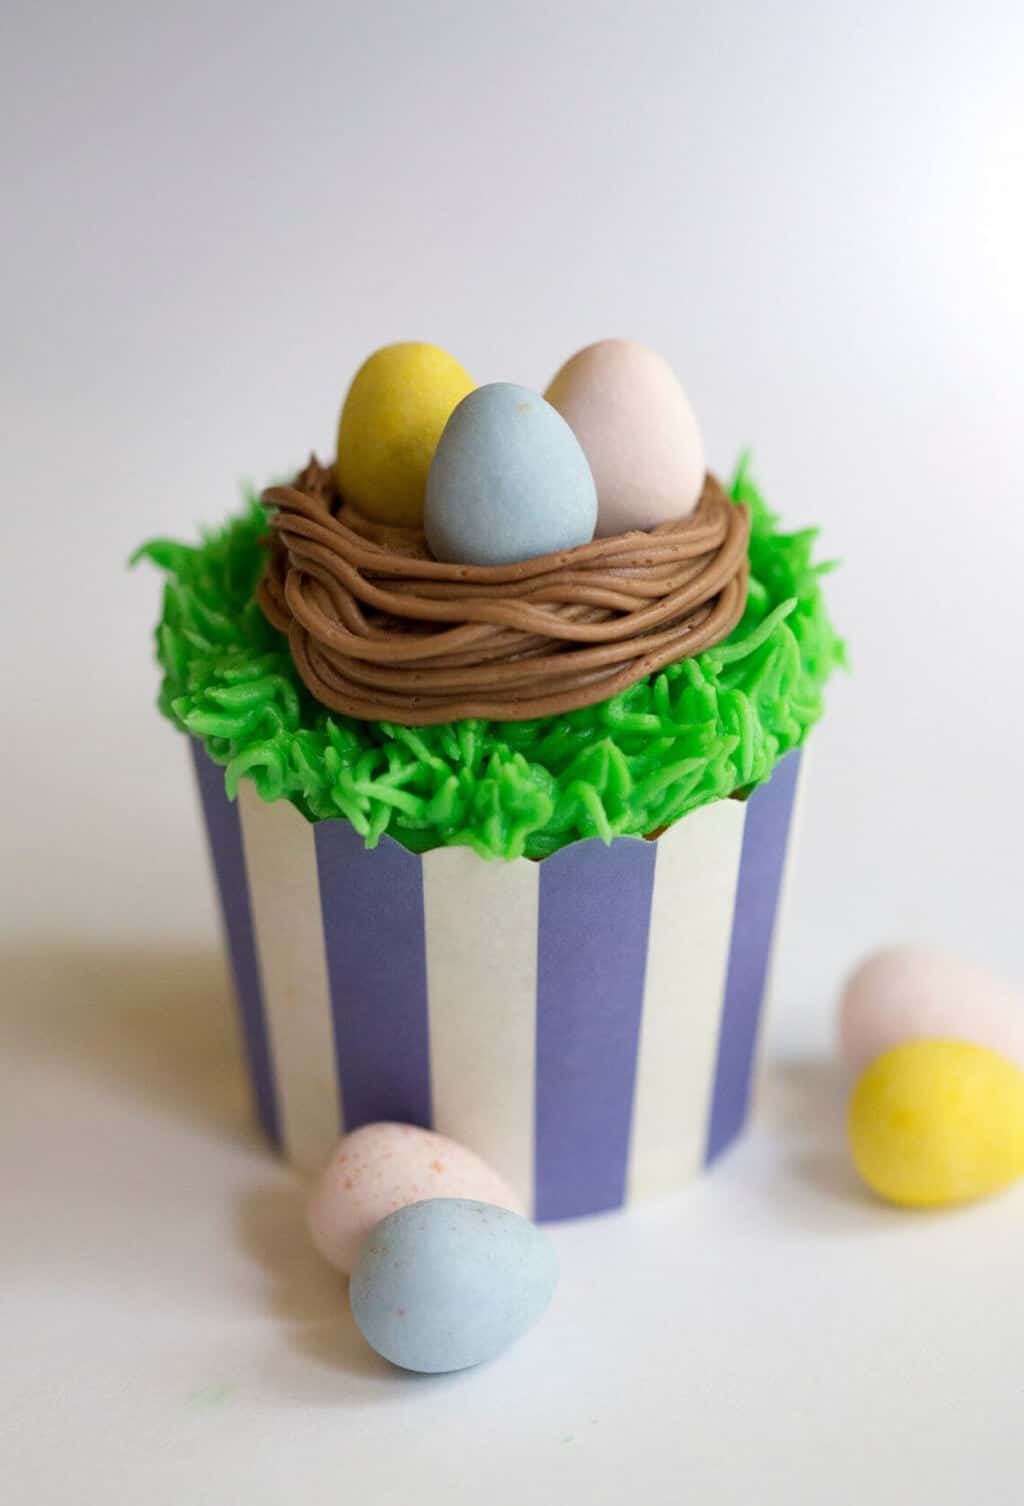 A photo of an Easter cupcake with chocolate eggs in a bird's nest.